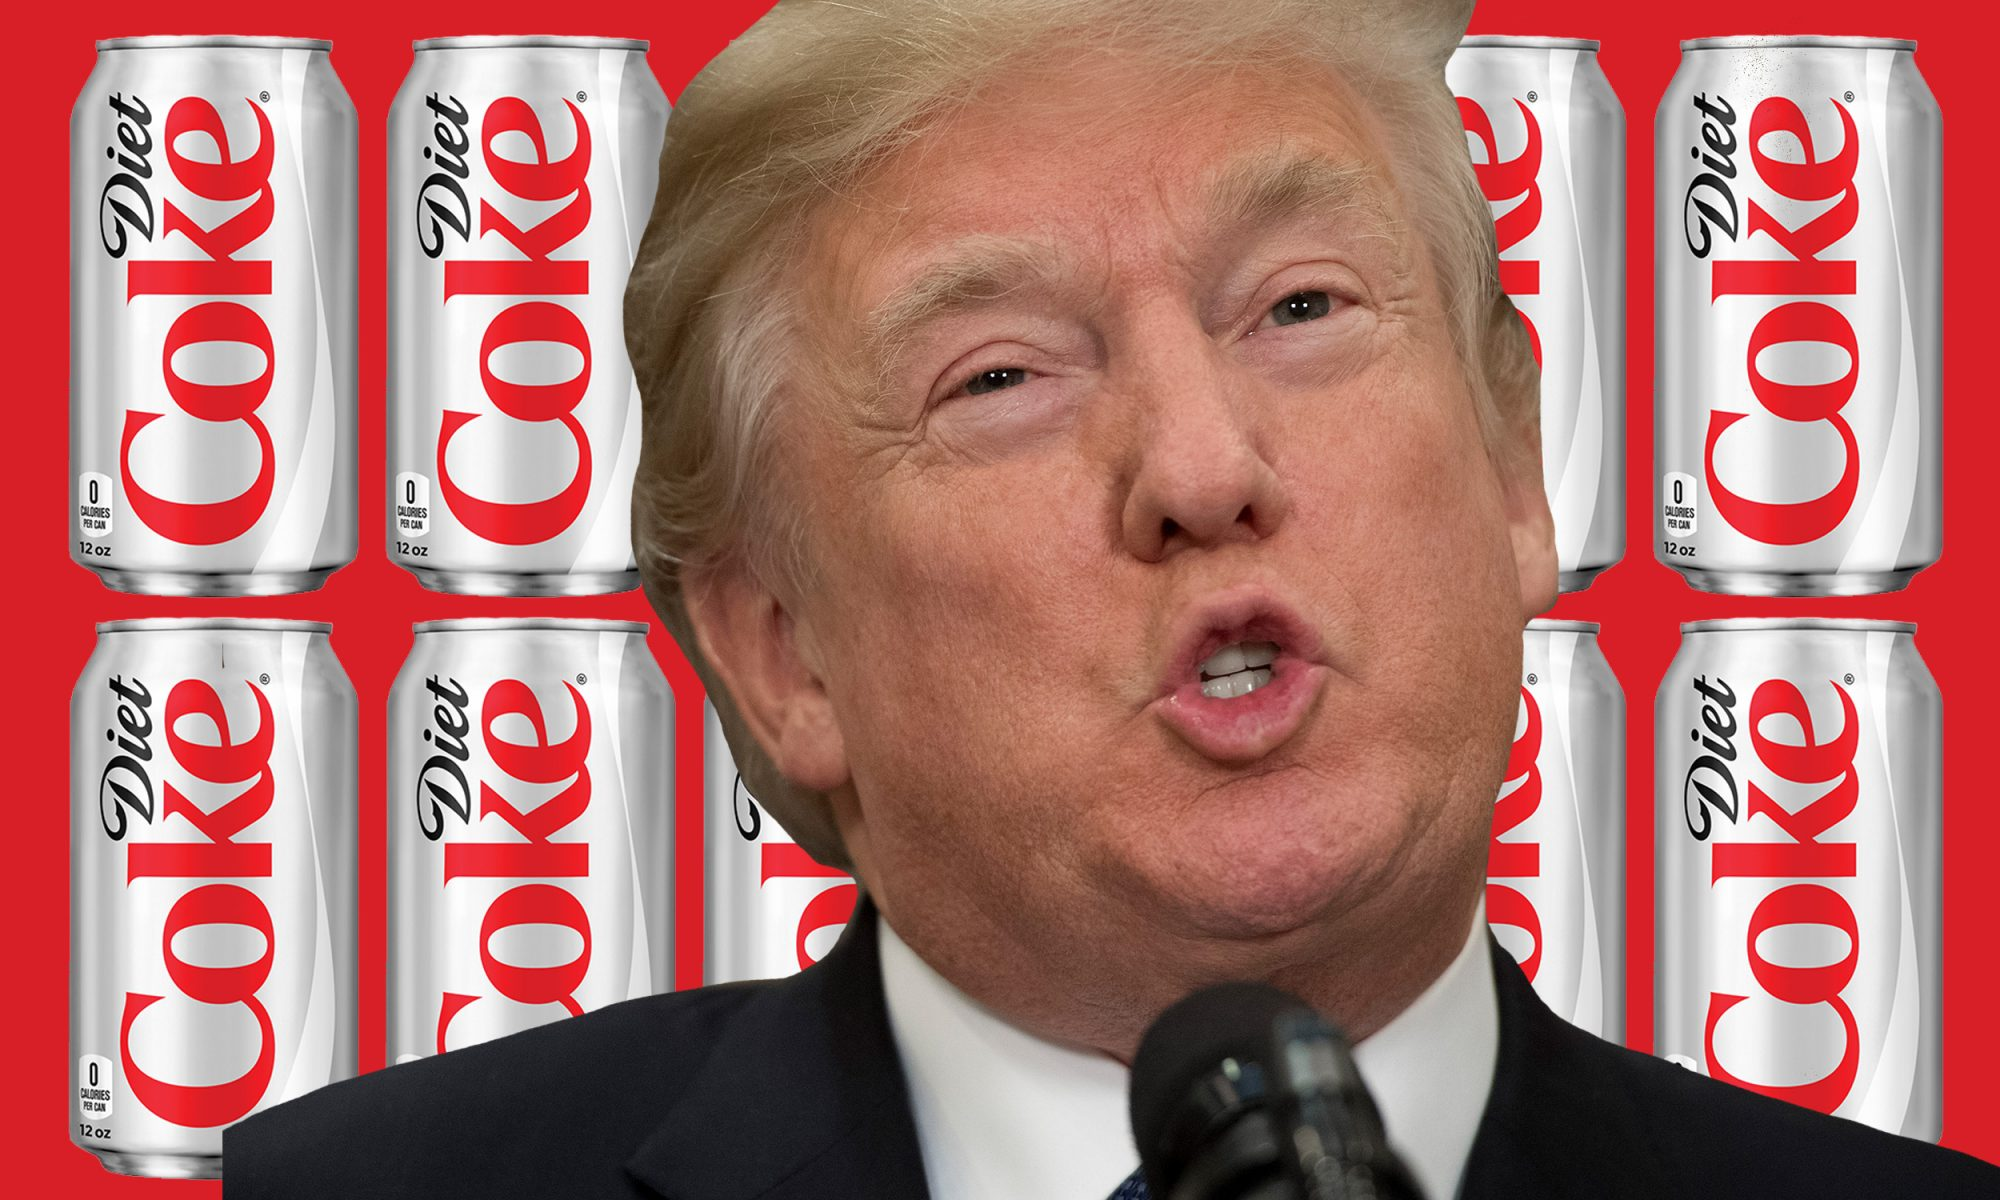 EC: Donald Trump Drinks 12 Diet Cokes a Day, Says Report